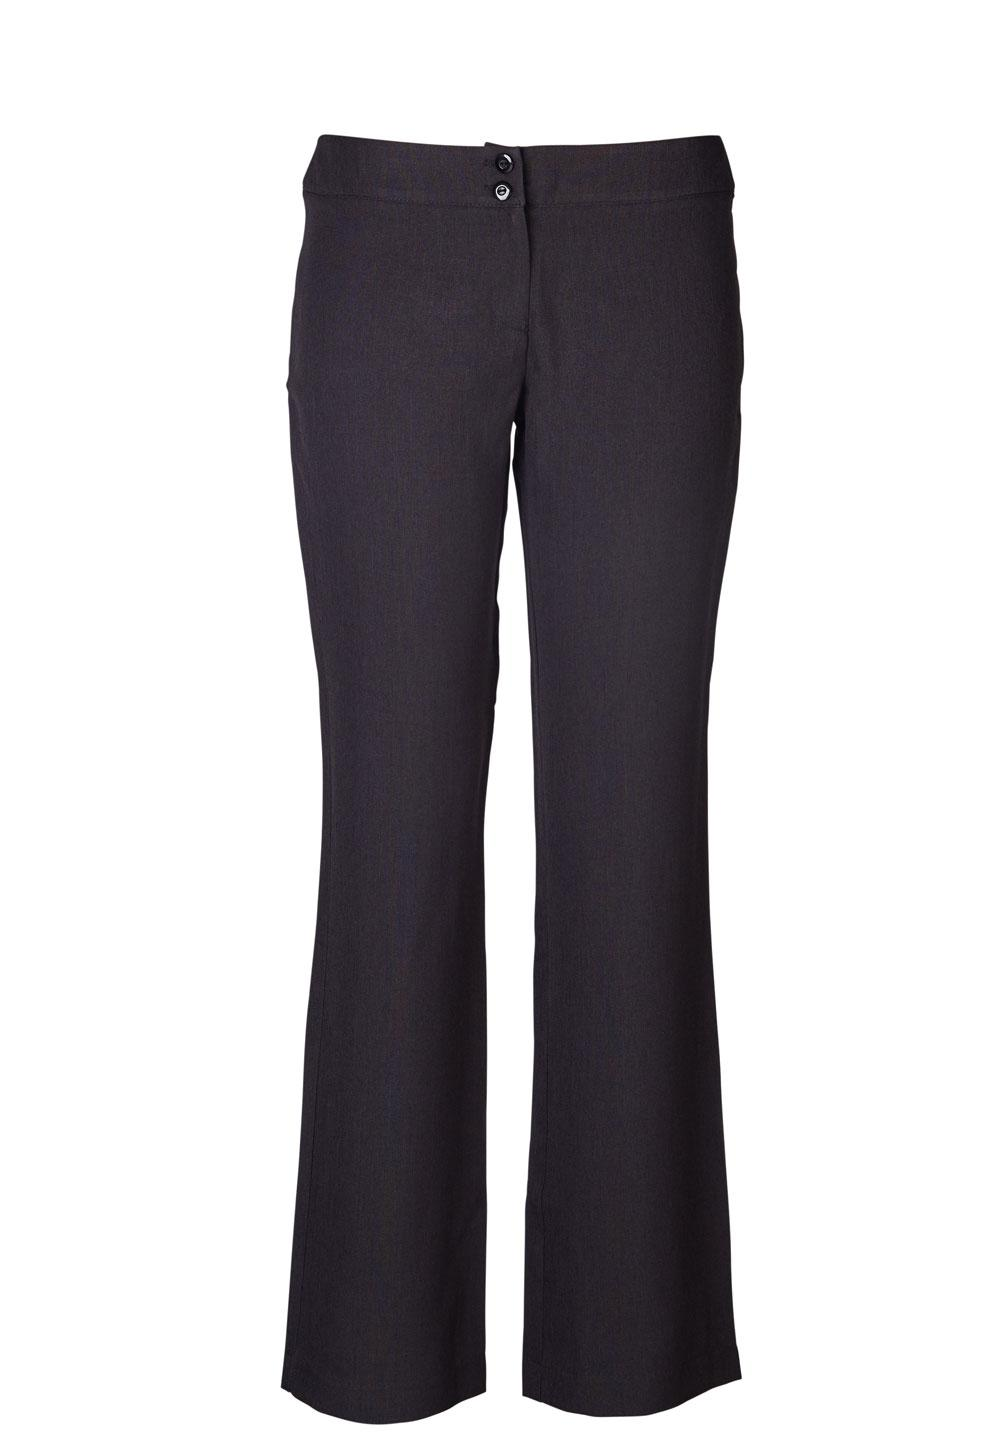 Susan Hipster Pants - Cationic Charcoal